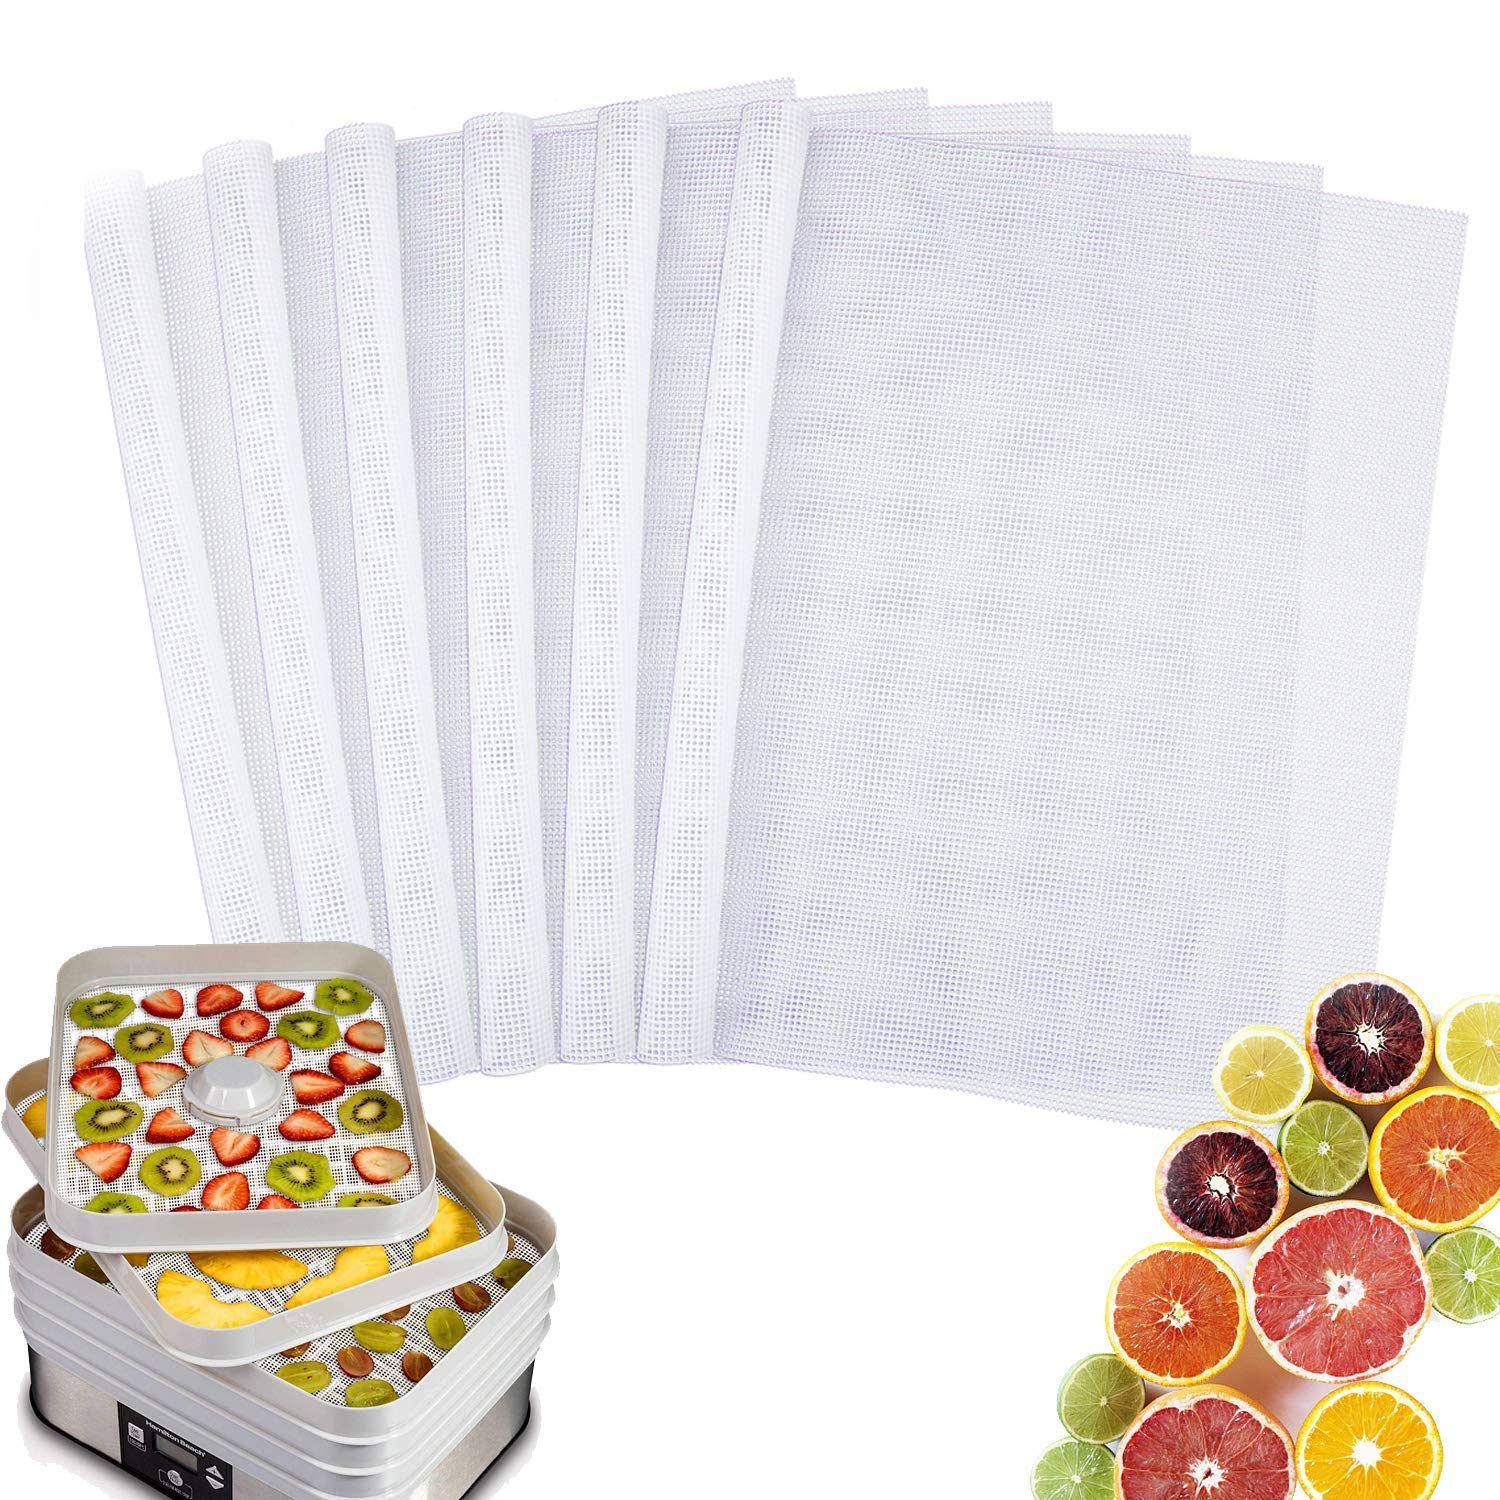 TABIGER Pack of 6 Reusable Non Stick Silicone Dehydrator Mesh Sheets 14'' x 14'' for Excalibur 2500 3500 2900 3900 Food Fruit Dryer Fits Excalibur 5 and 9 Trays by Tabiger